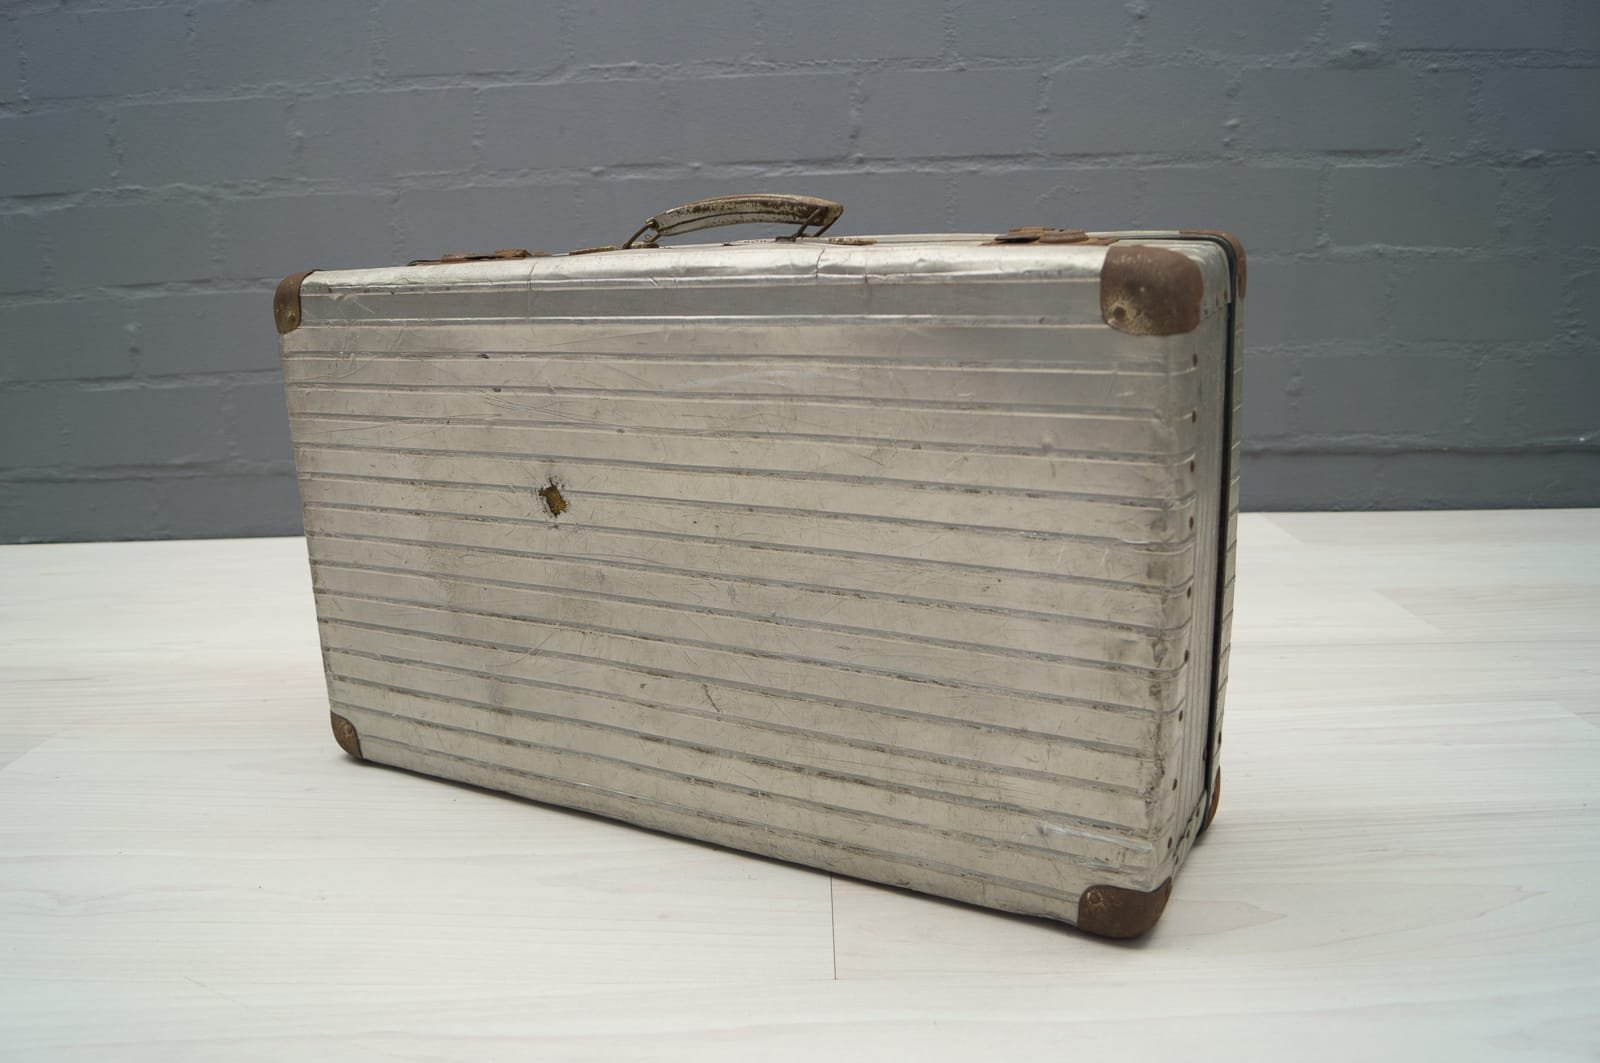 Vintage Aluminum Travel Trunk from Rimowa for sale at Pamono